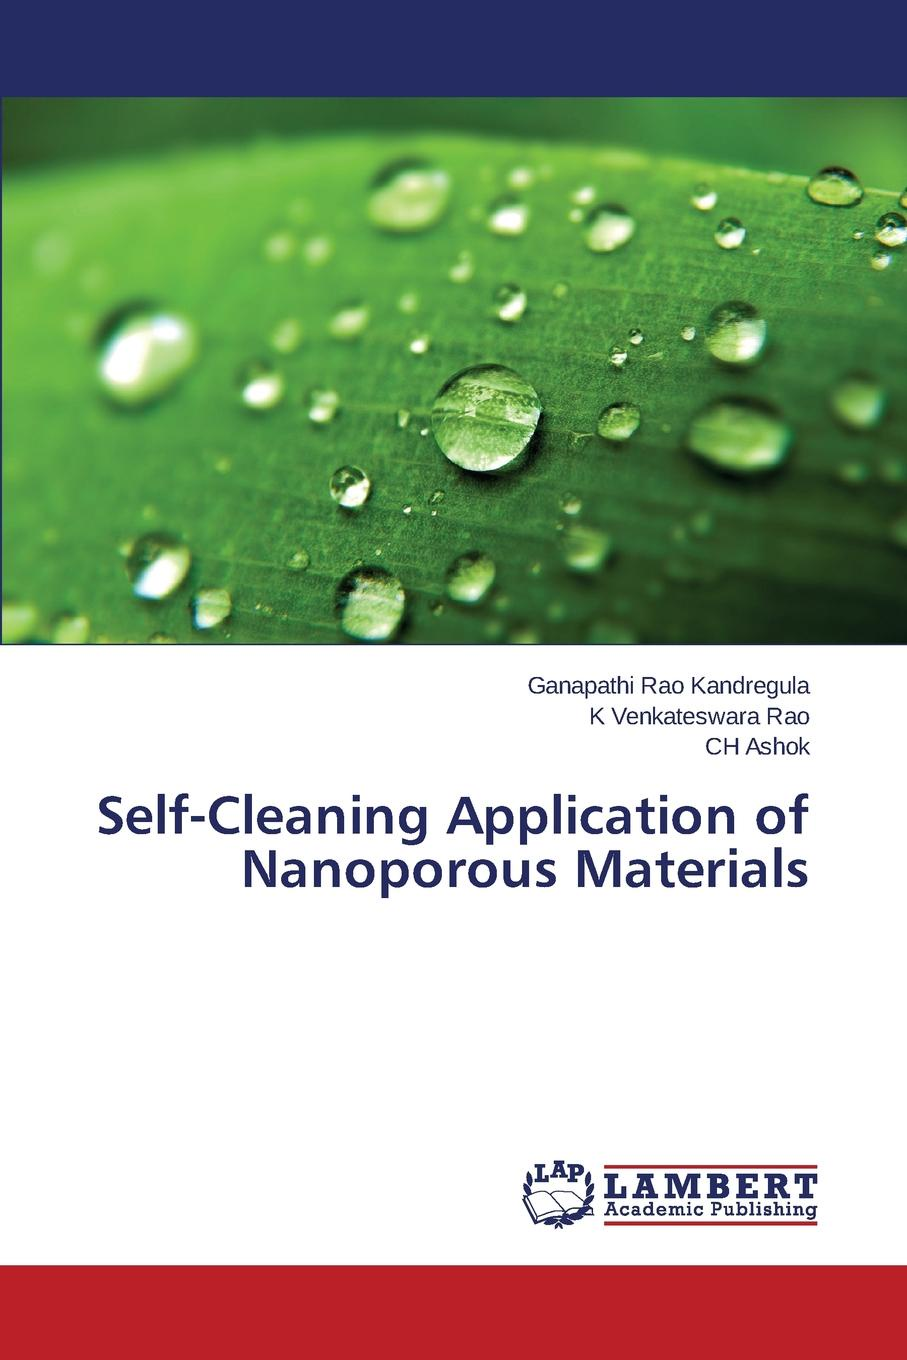 Kandregula Ganapathi Rao, Venkateswara Rao K, Ashok CH Self-Cleaning Application of Nanoporous Materials дефлектор капота sim skicee1212 для kia ceed 2012 2015